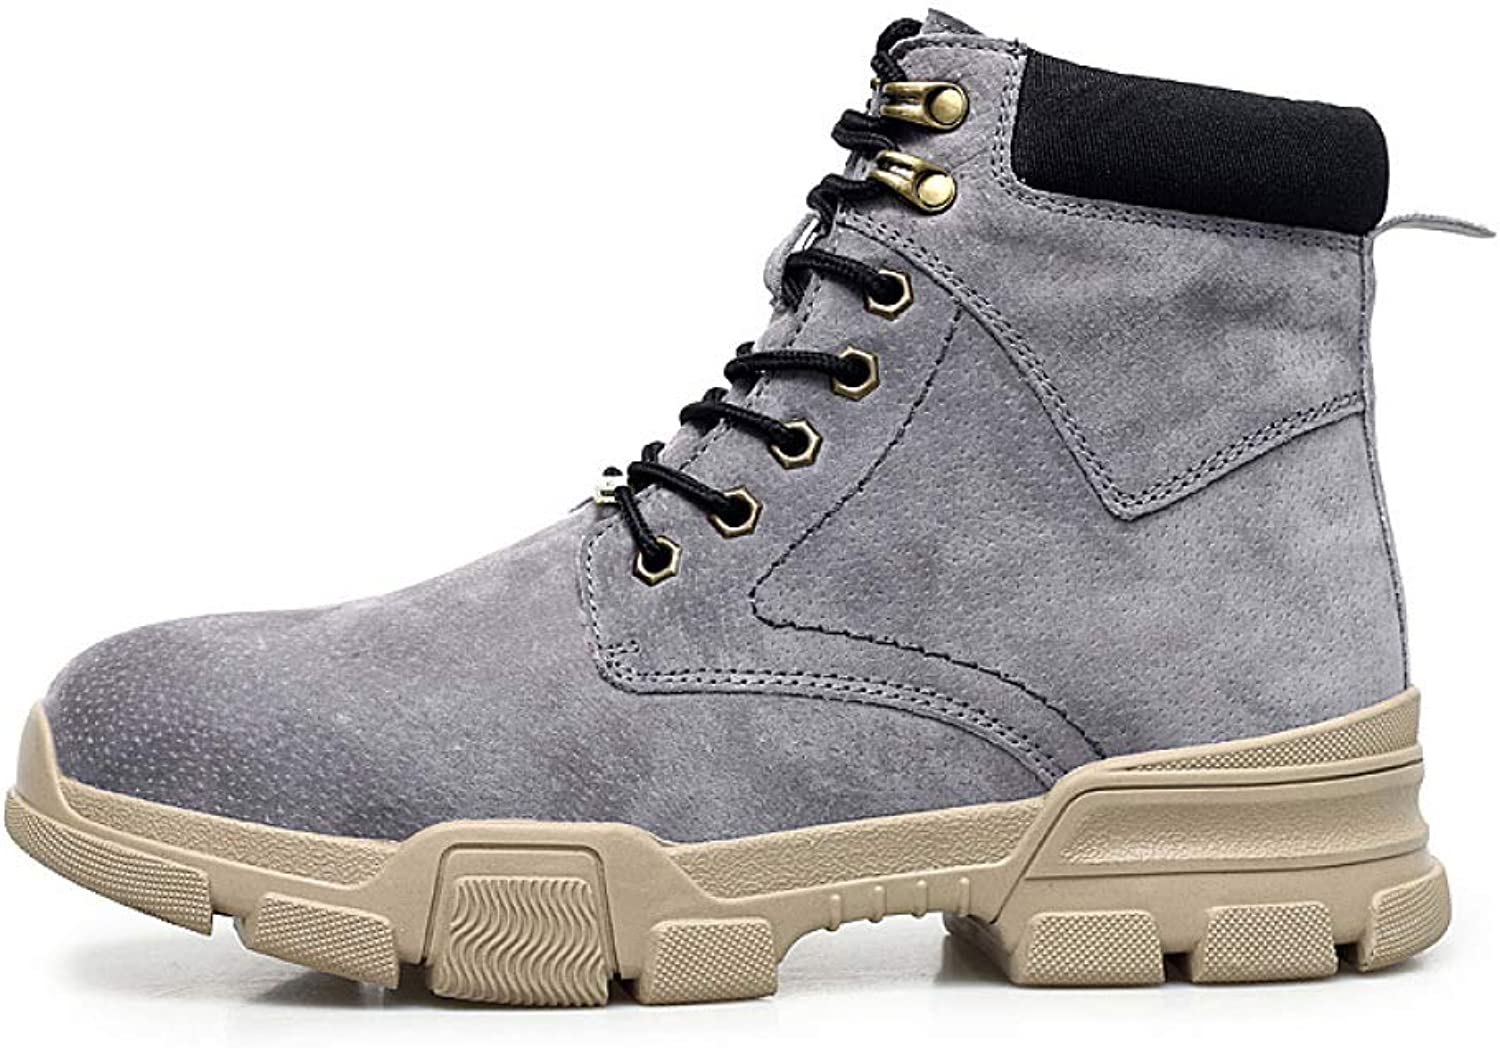 DZX Mens Snow Boots Winter Warm Fur Lined Martin Boots Antiskid Lace Up Flat Boots,Comfy Casual Sneaker,Suede Leather shoes Trekking Walking,Grey-38